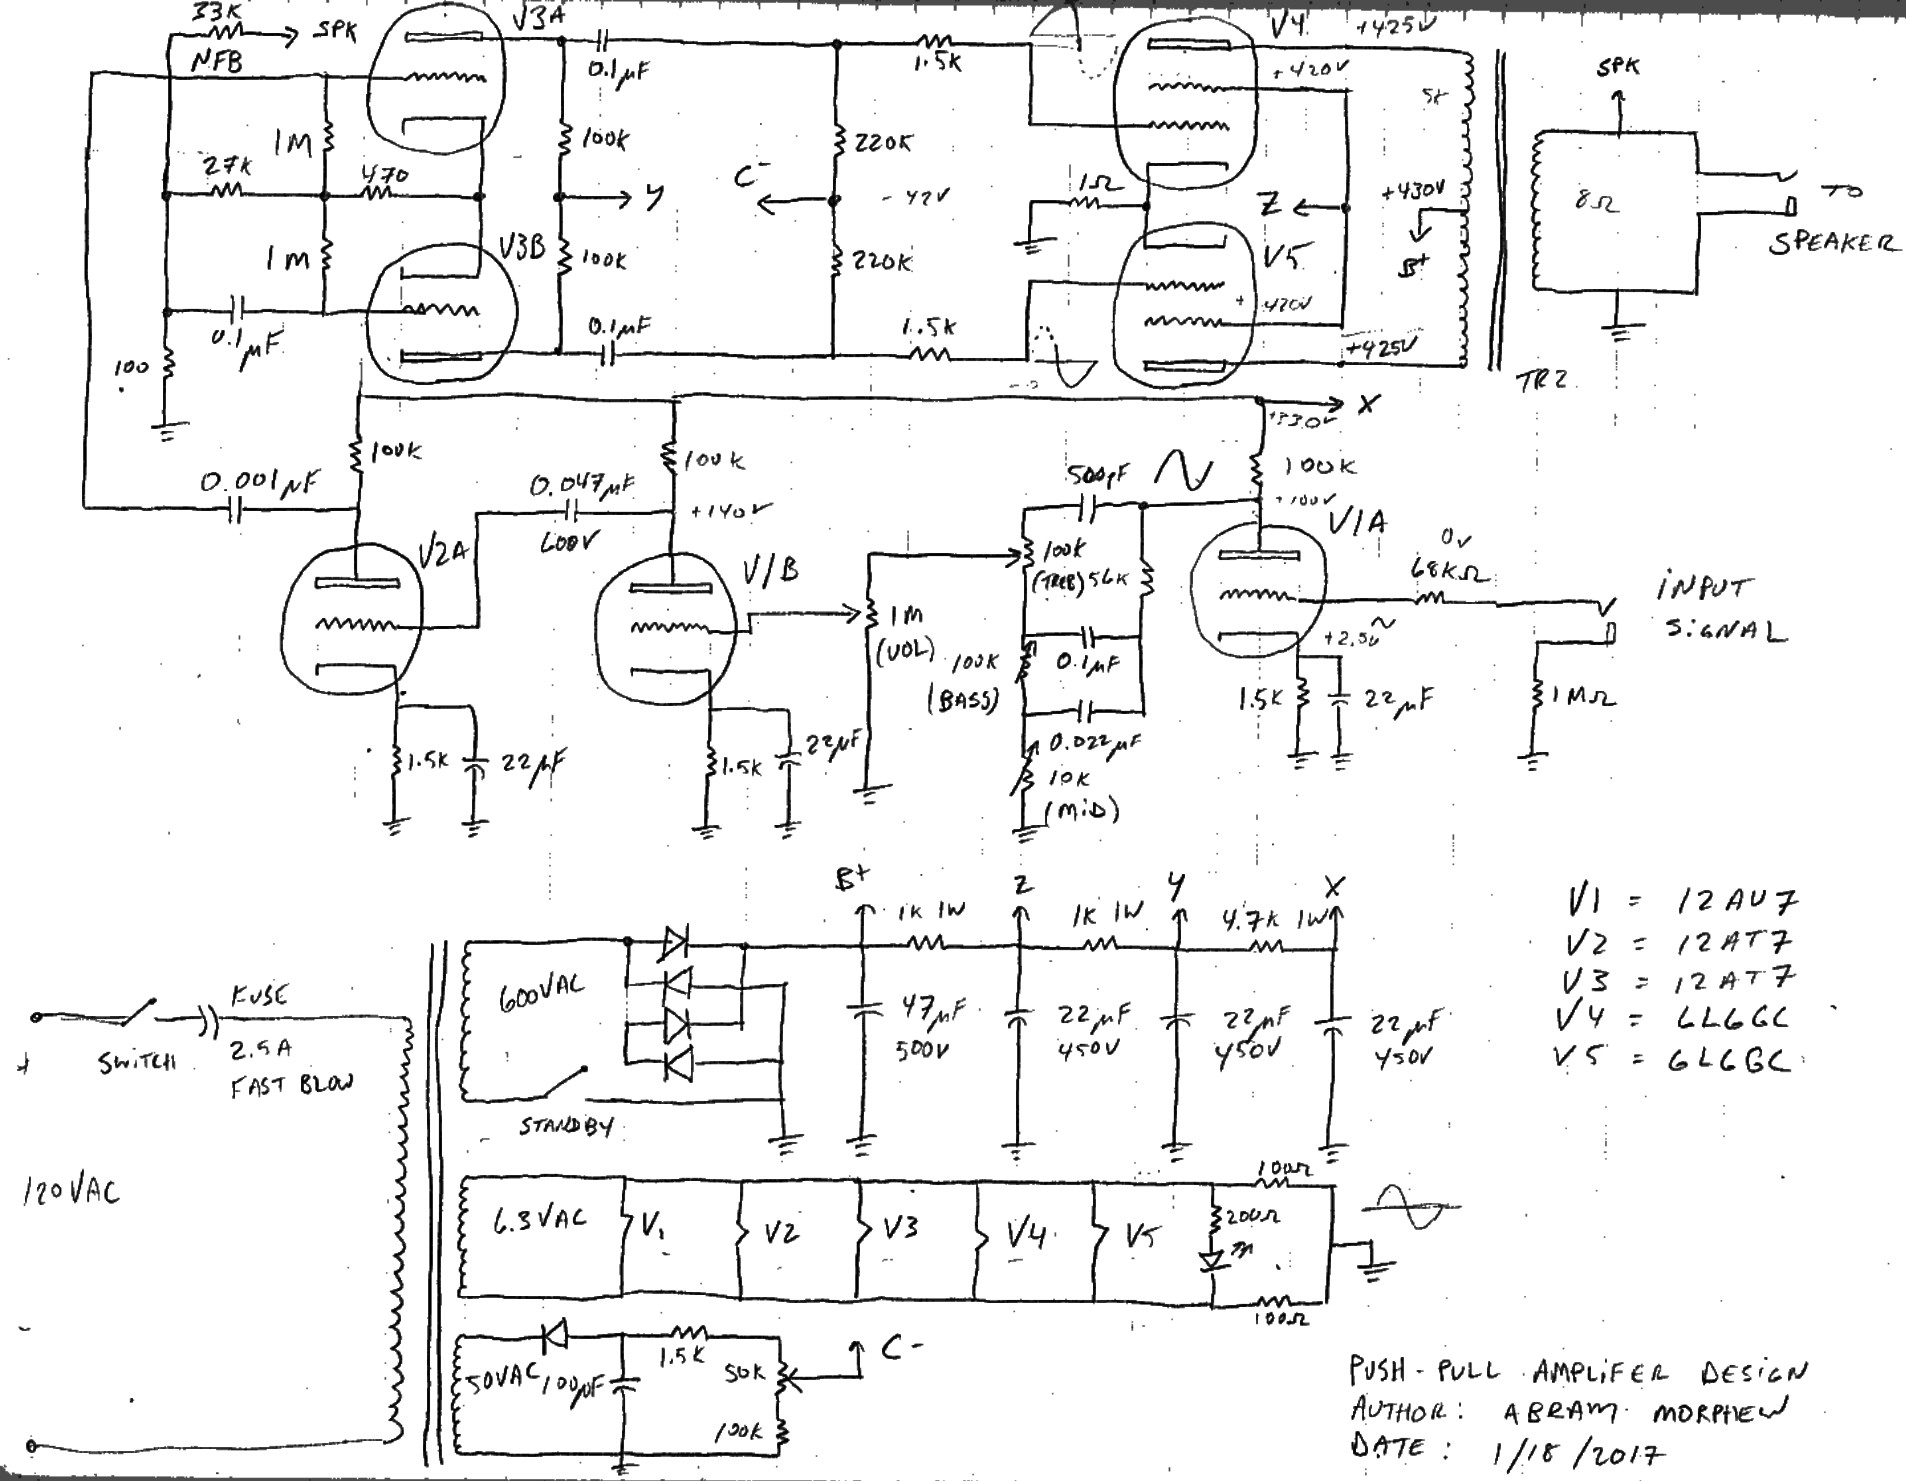 Tda 2040 Stereo Schematic Tube – Notes to Self Of Tda 2040 Stereo Schematic